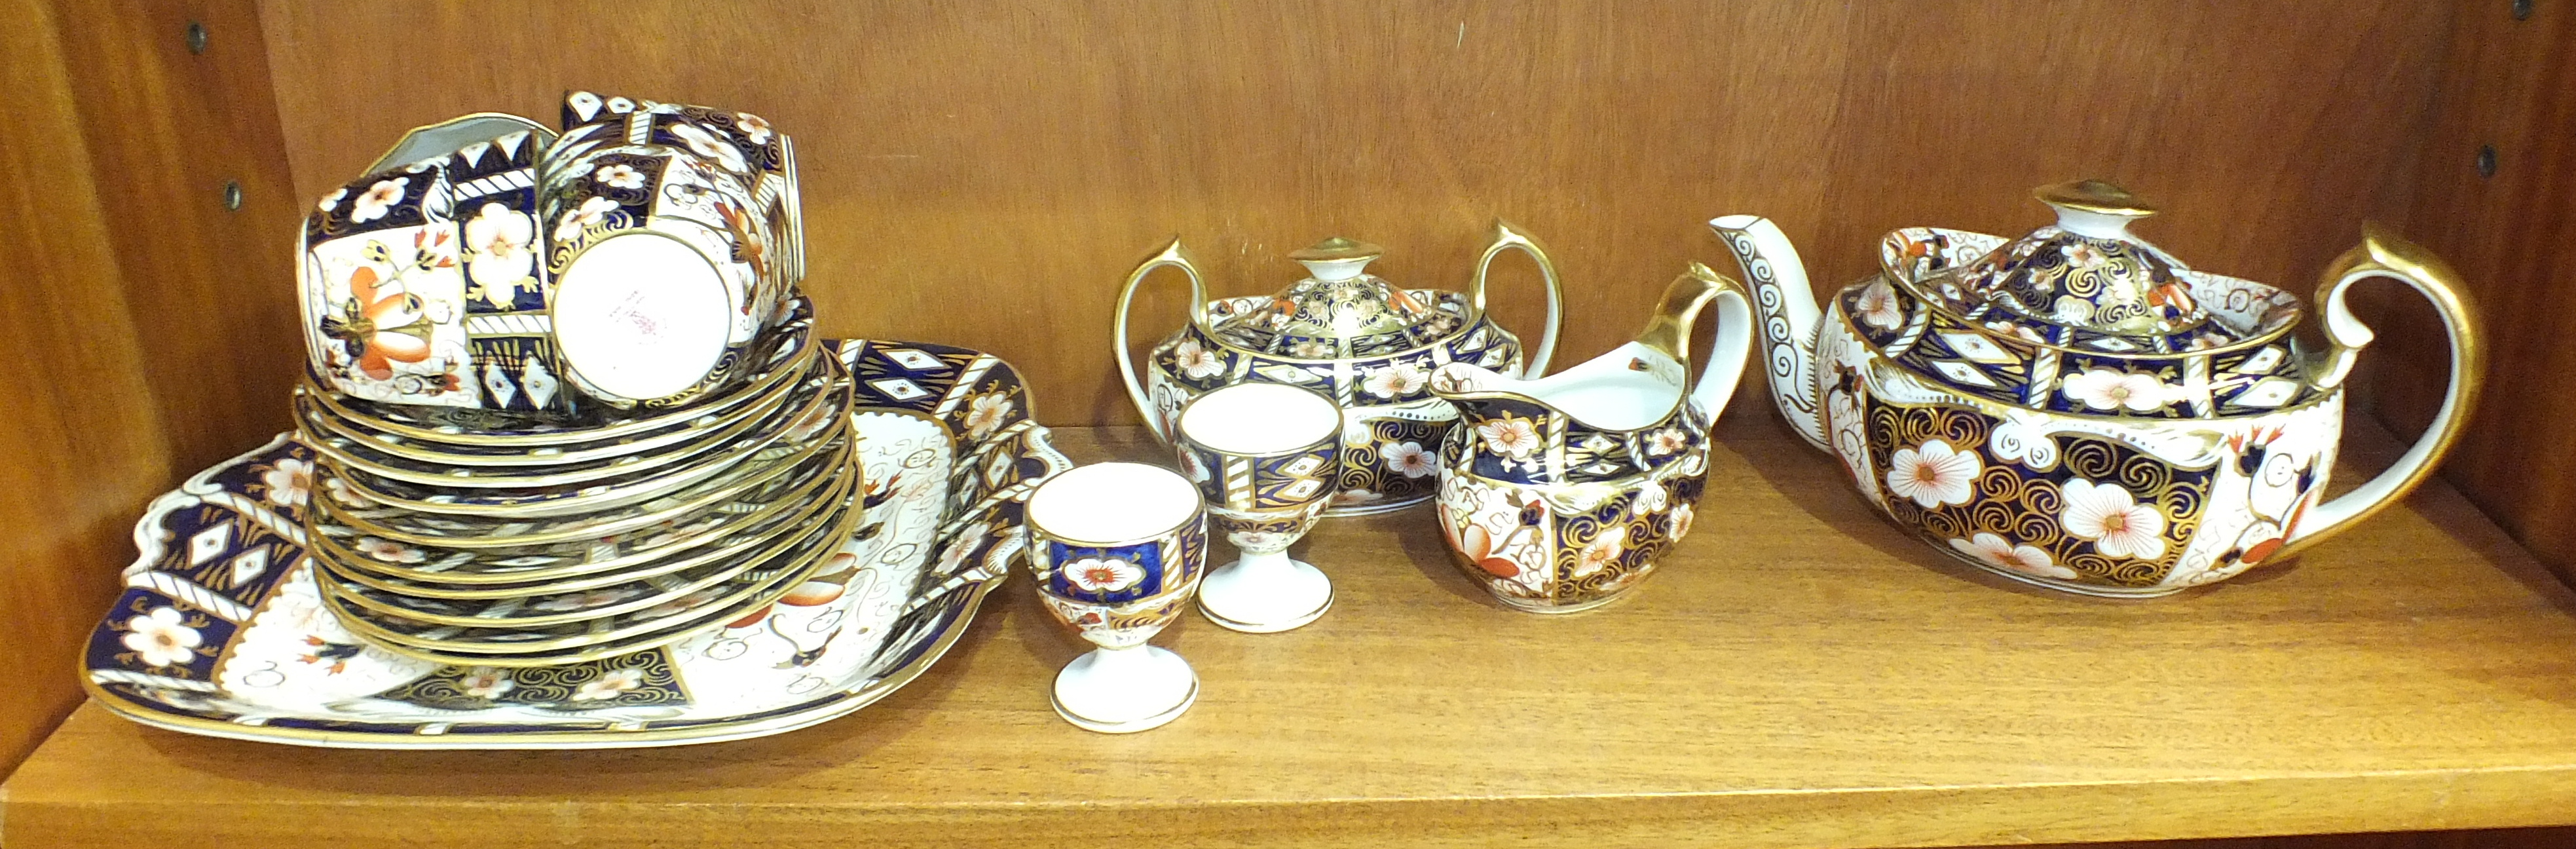 Lot 107 - Eighteen pieces of Royal Crown Derby Imari-decorated tea ware, pattern no. 2451 and two Mintons